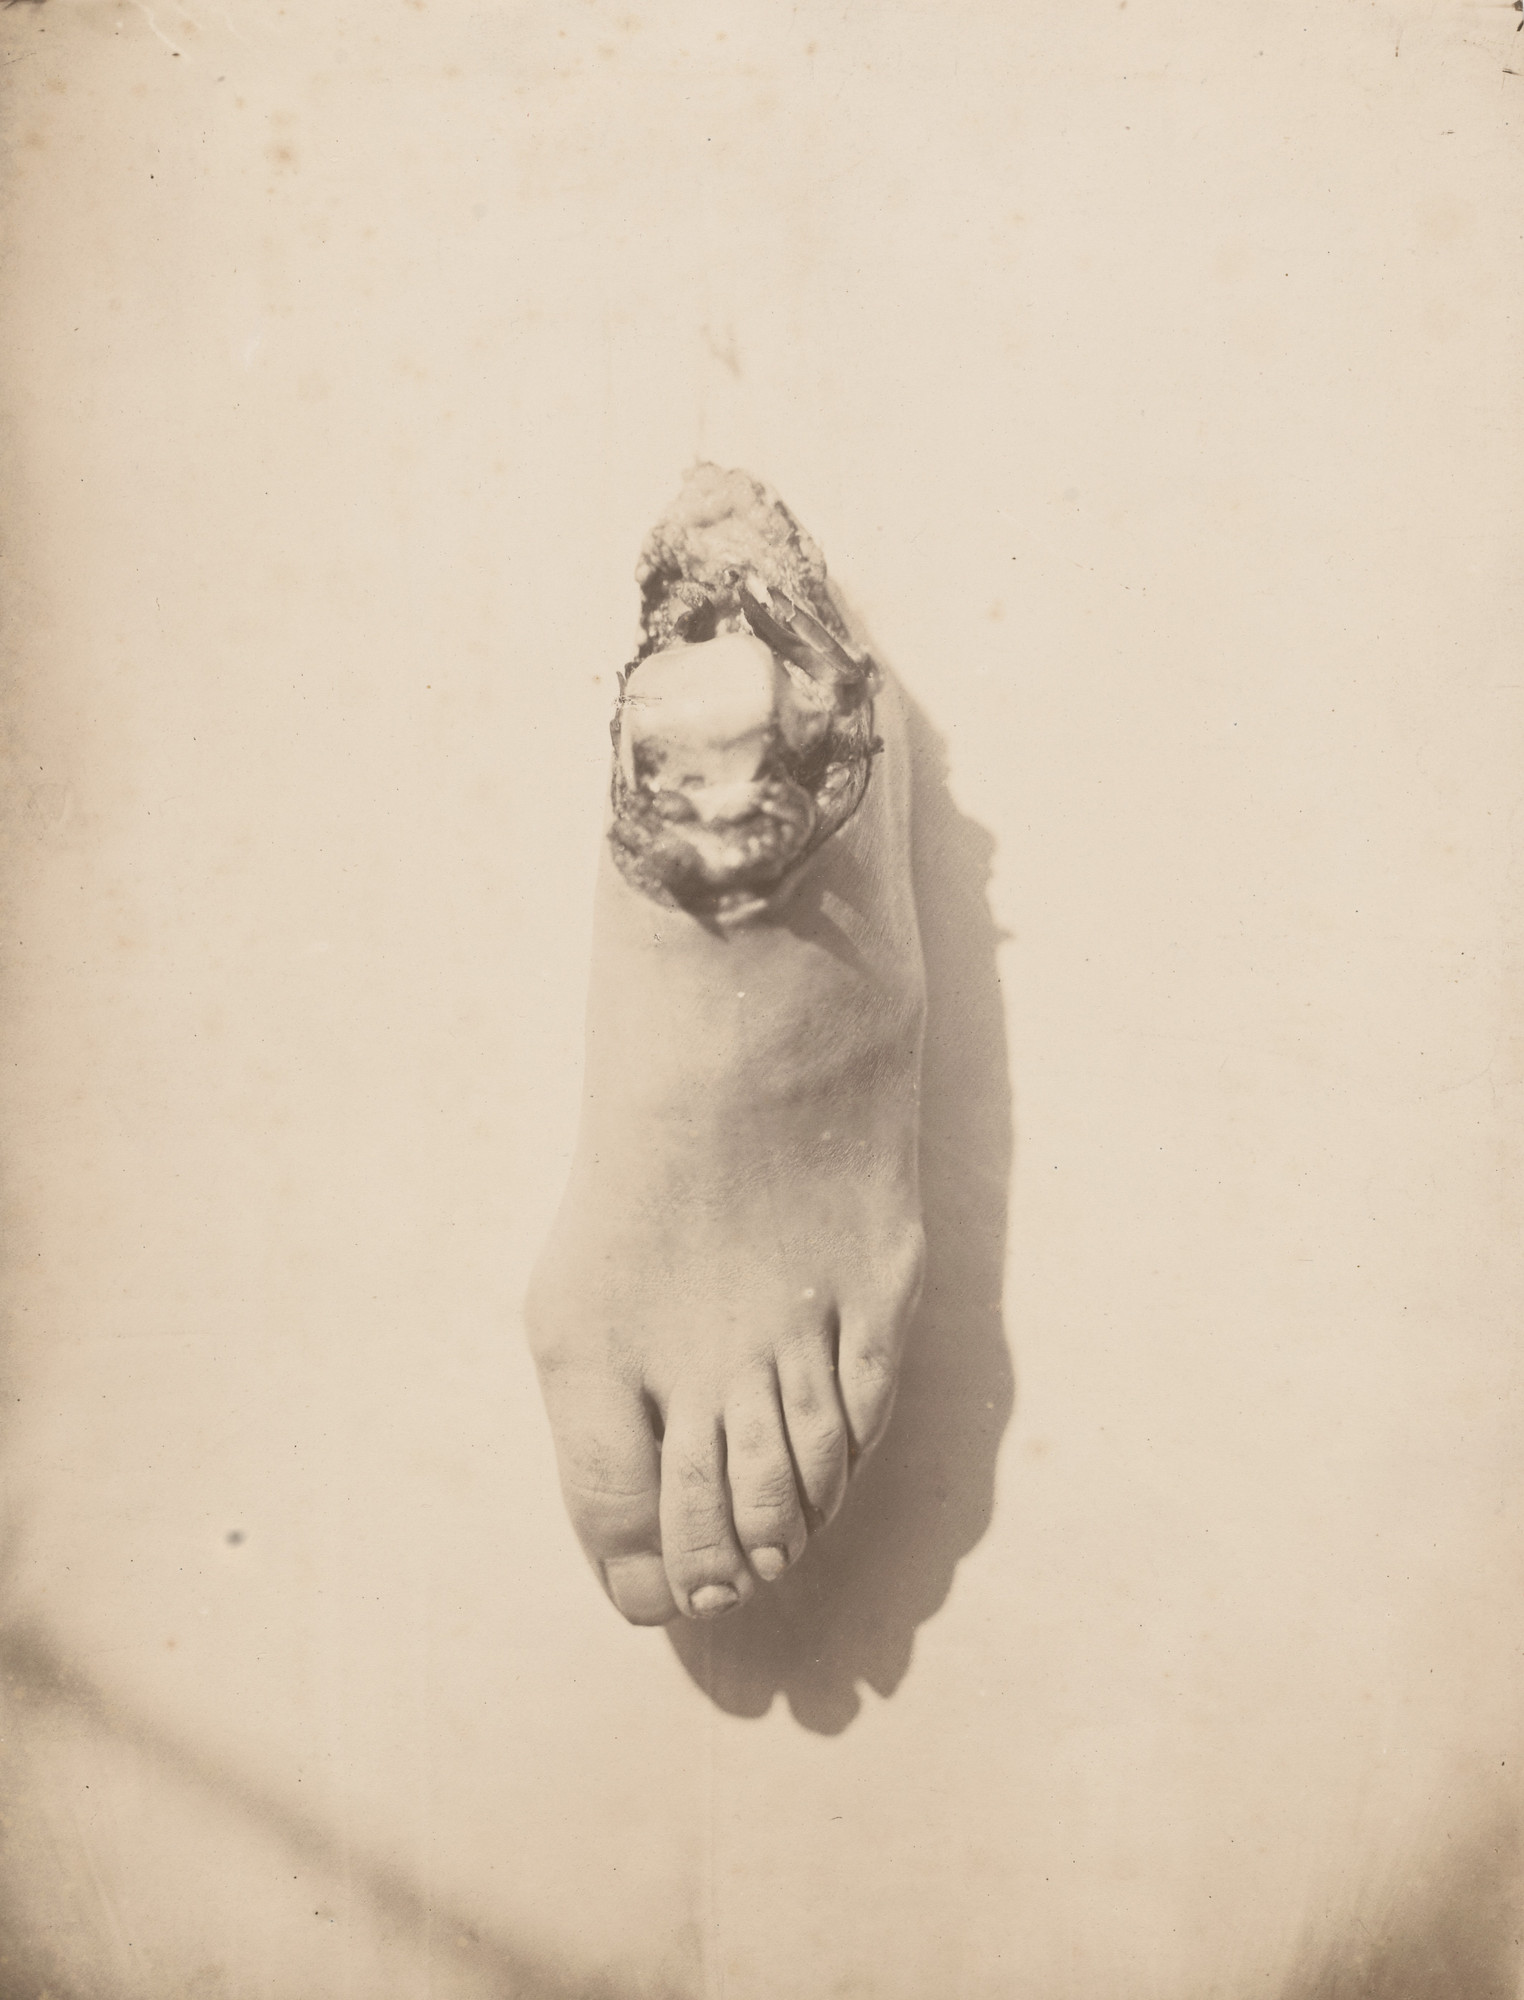 Unknown. Untitled. c. 1855